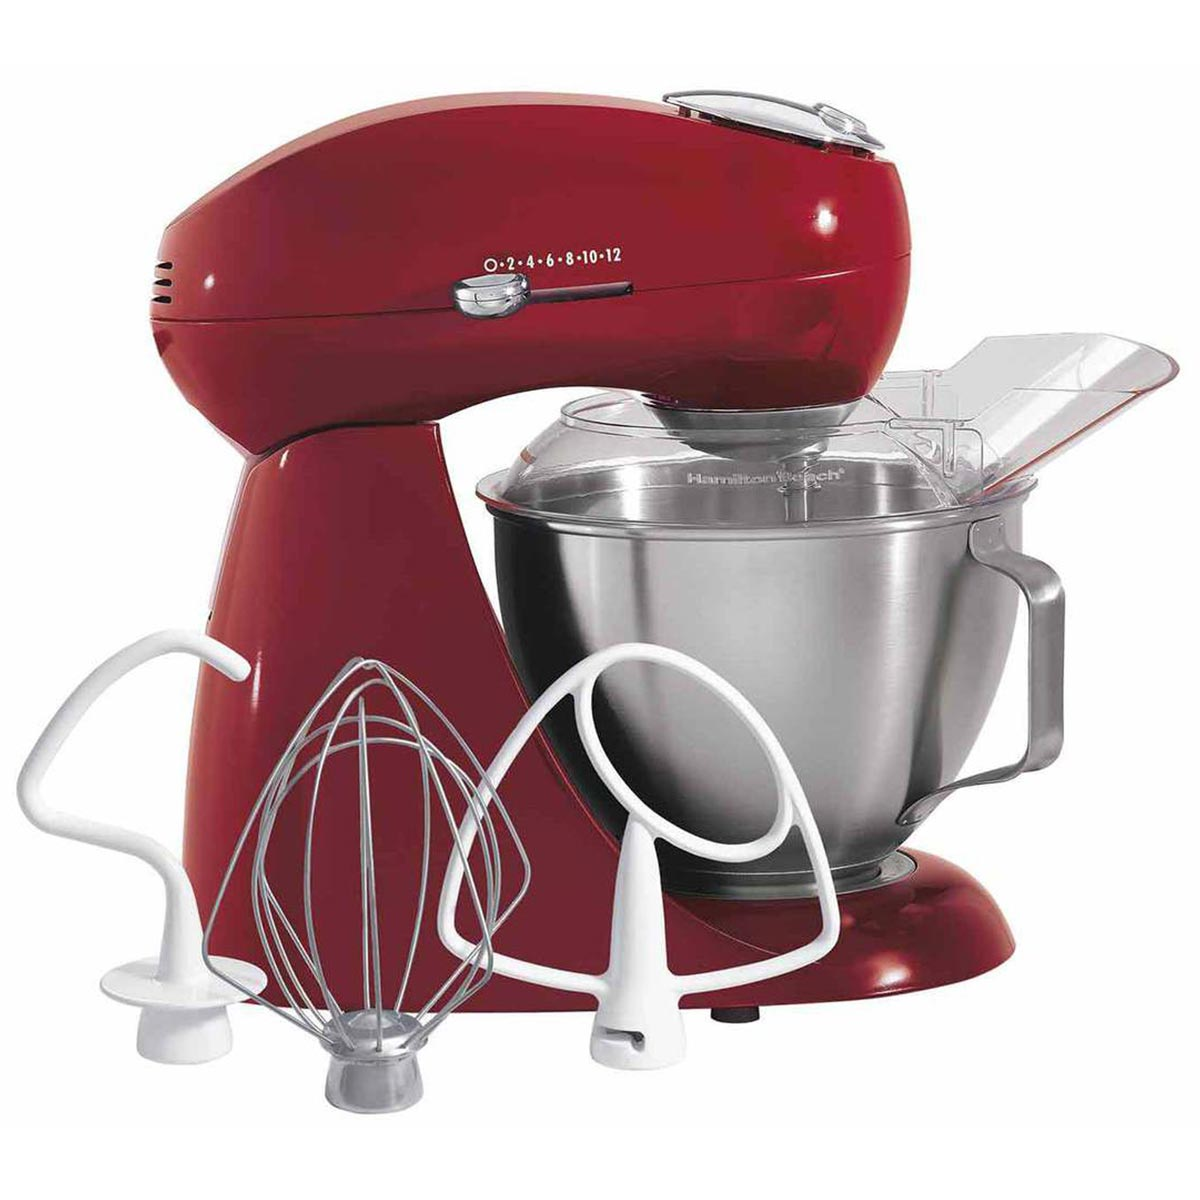 Eclectrics® Carmine Red All-Metal Stand Mixer (63232)